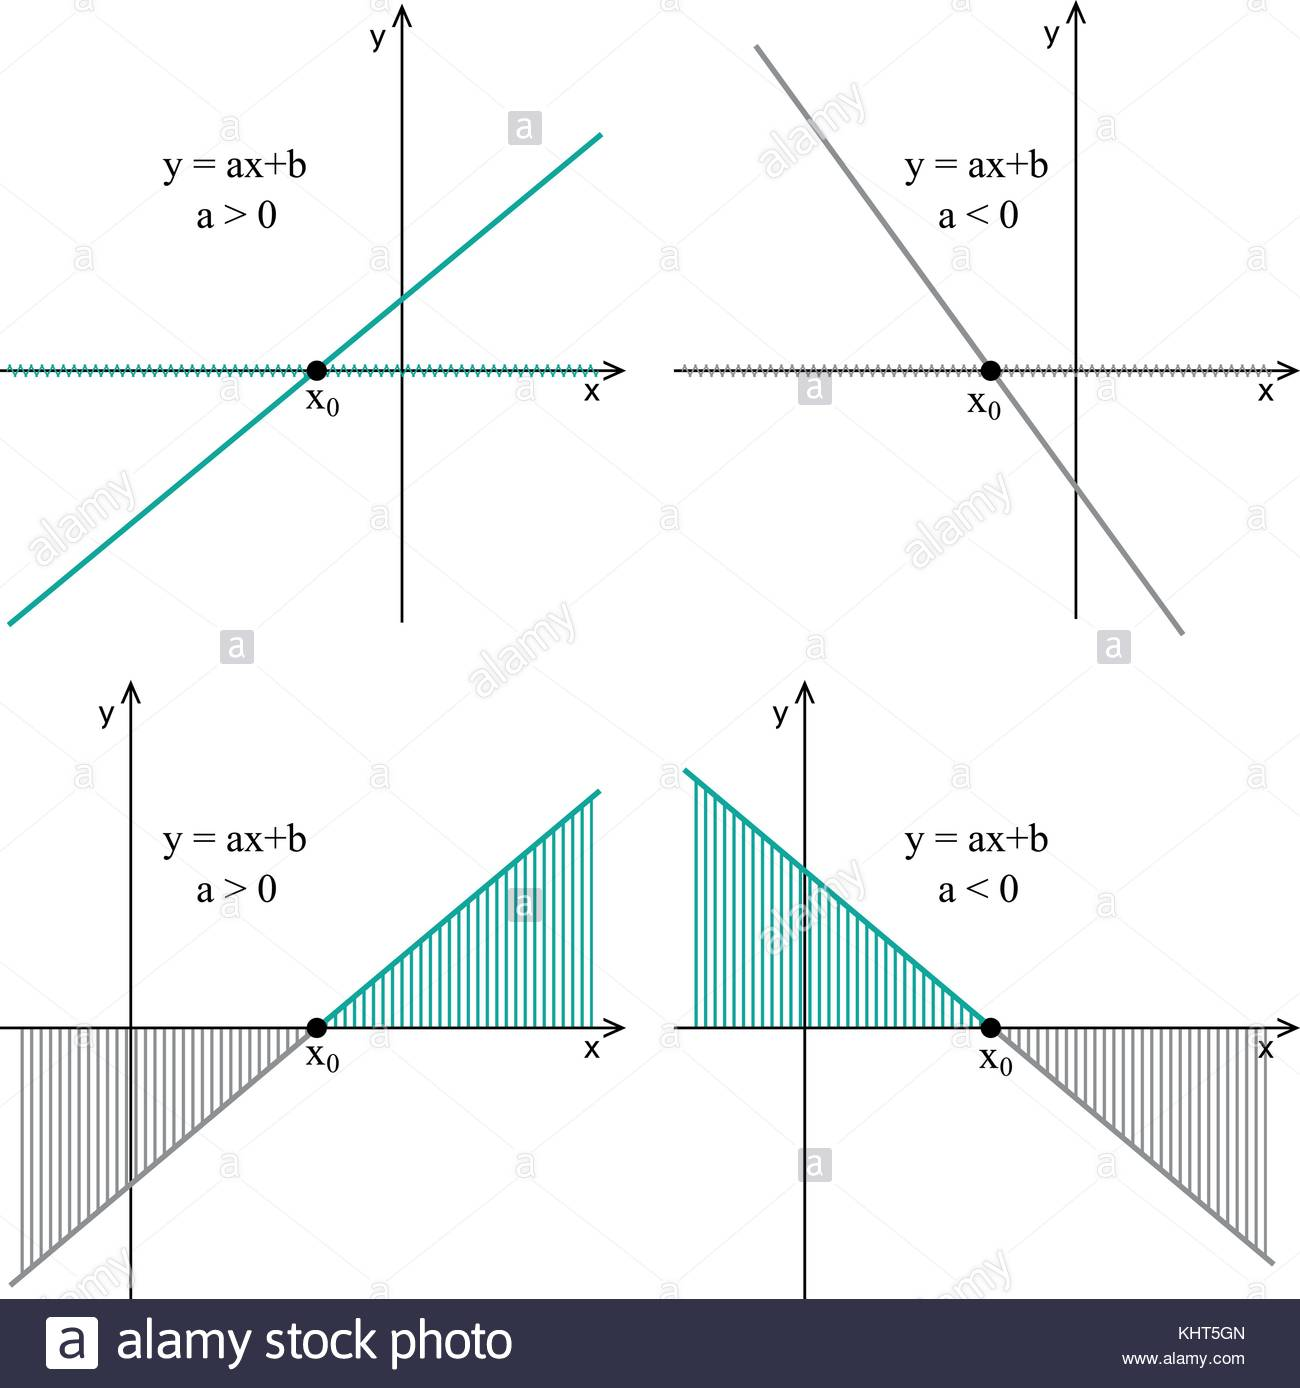 Awesome vector valued function photographs